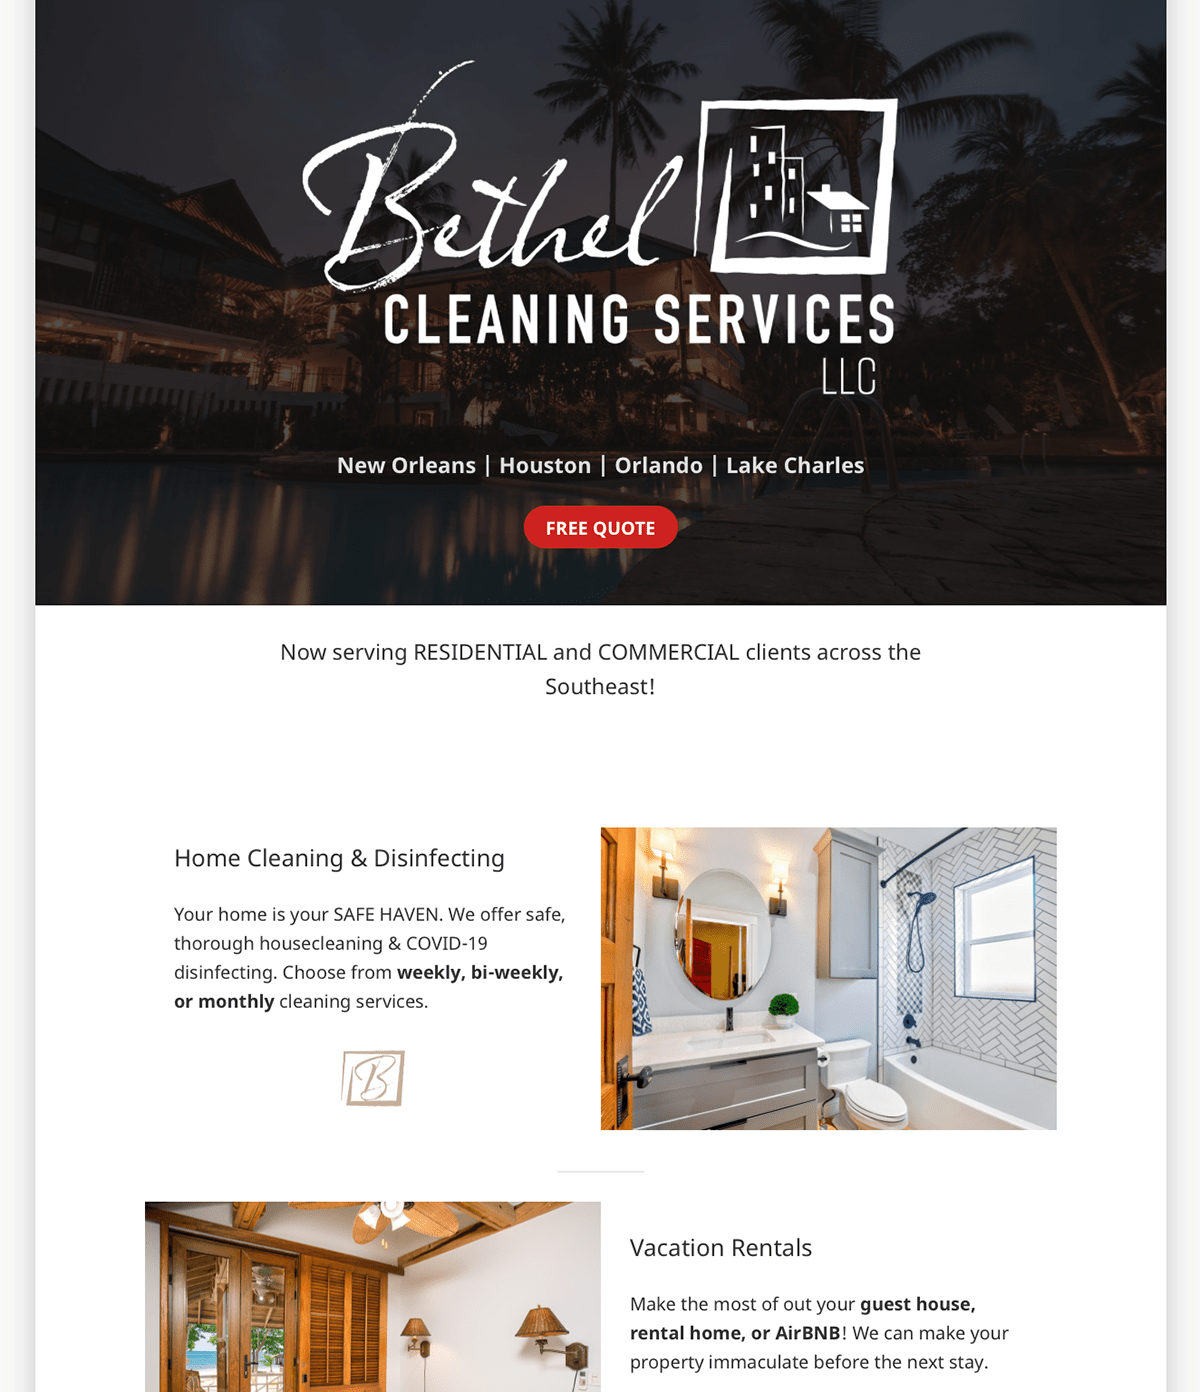 Brand Design brand launch cleaning service graphic design  Logos & Marks Modern Design Small Business